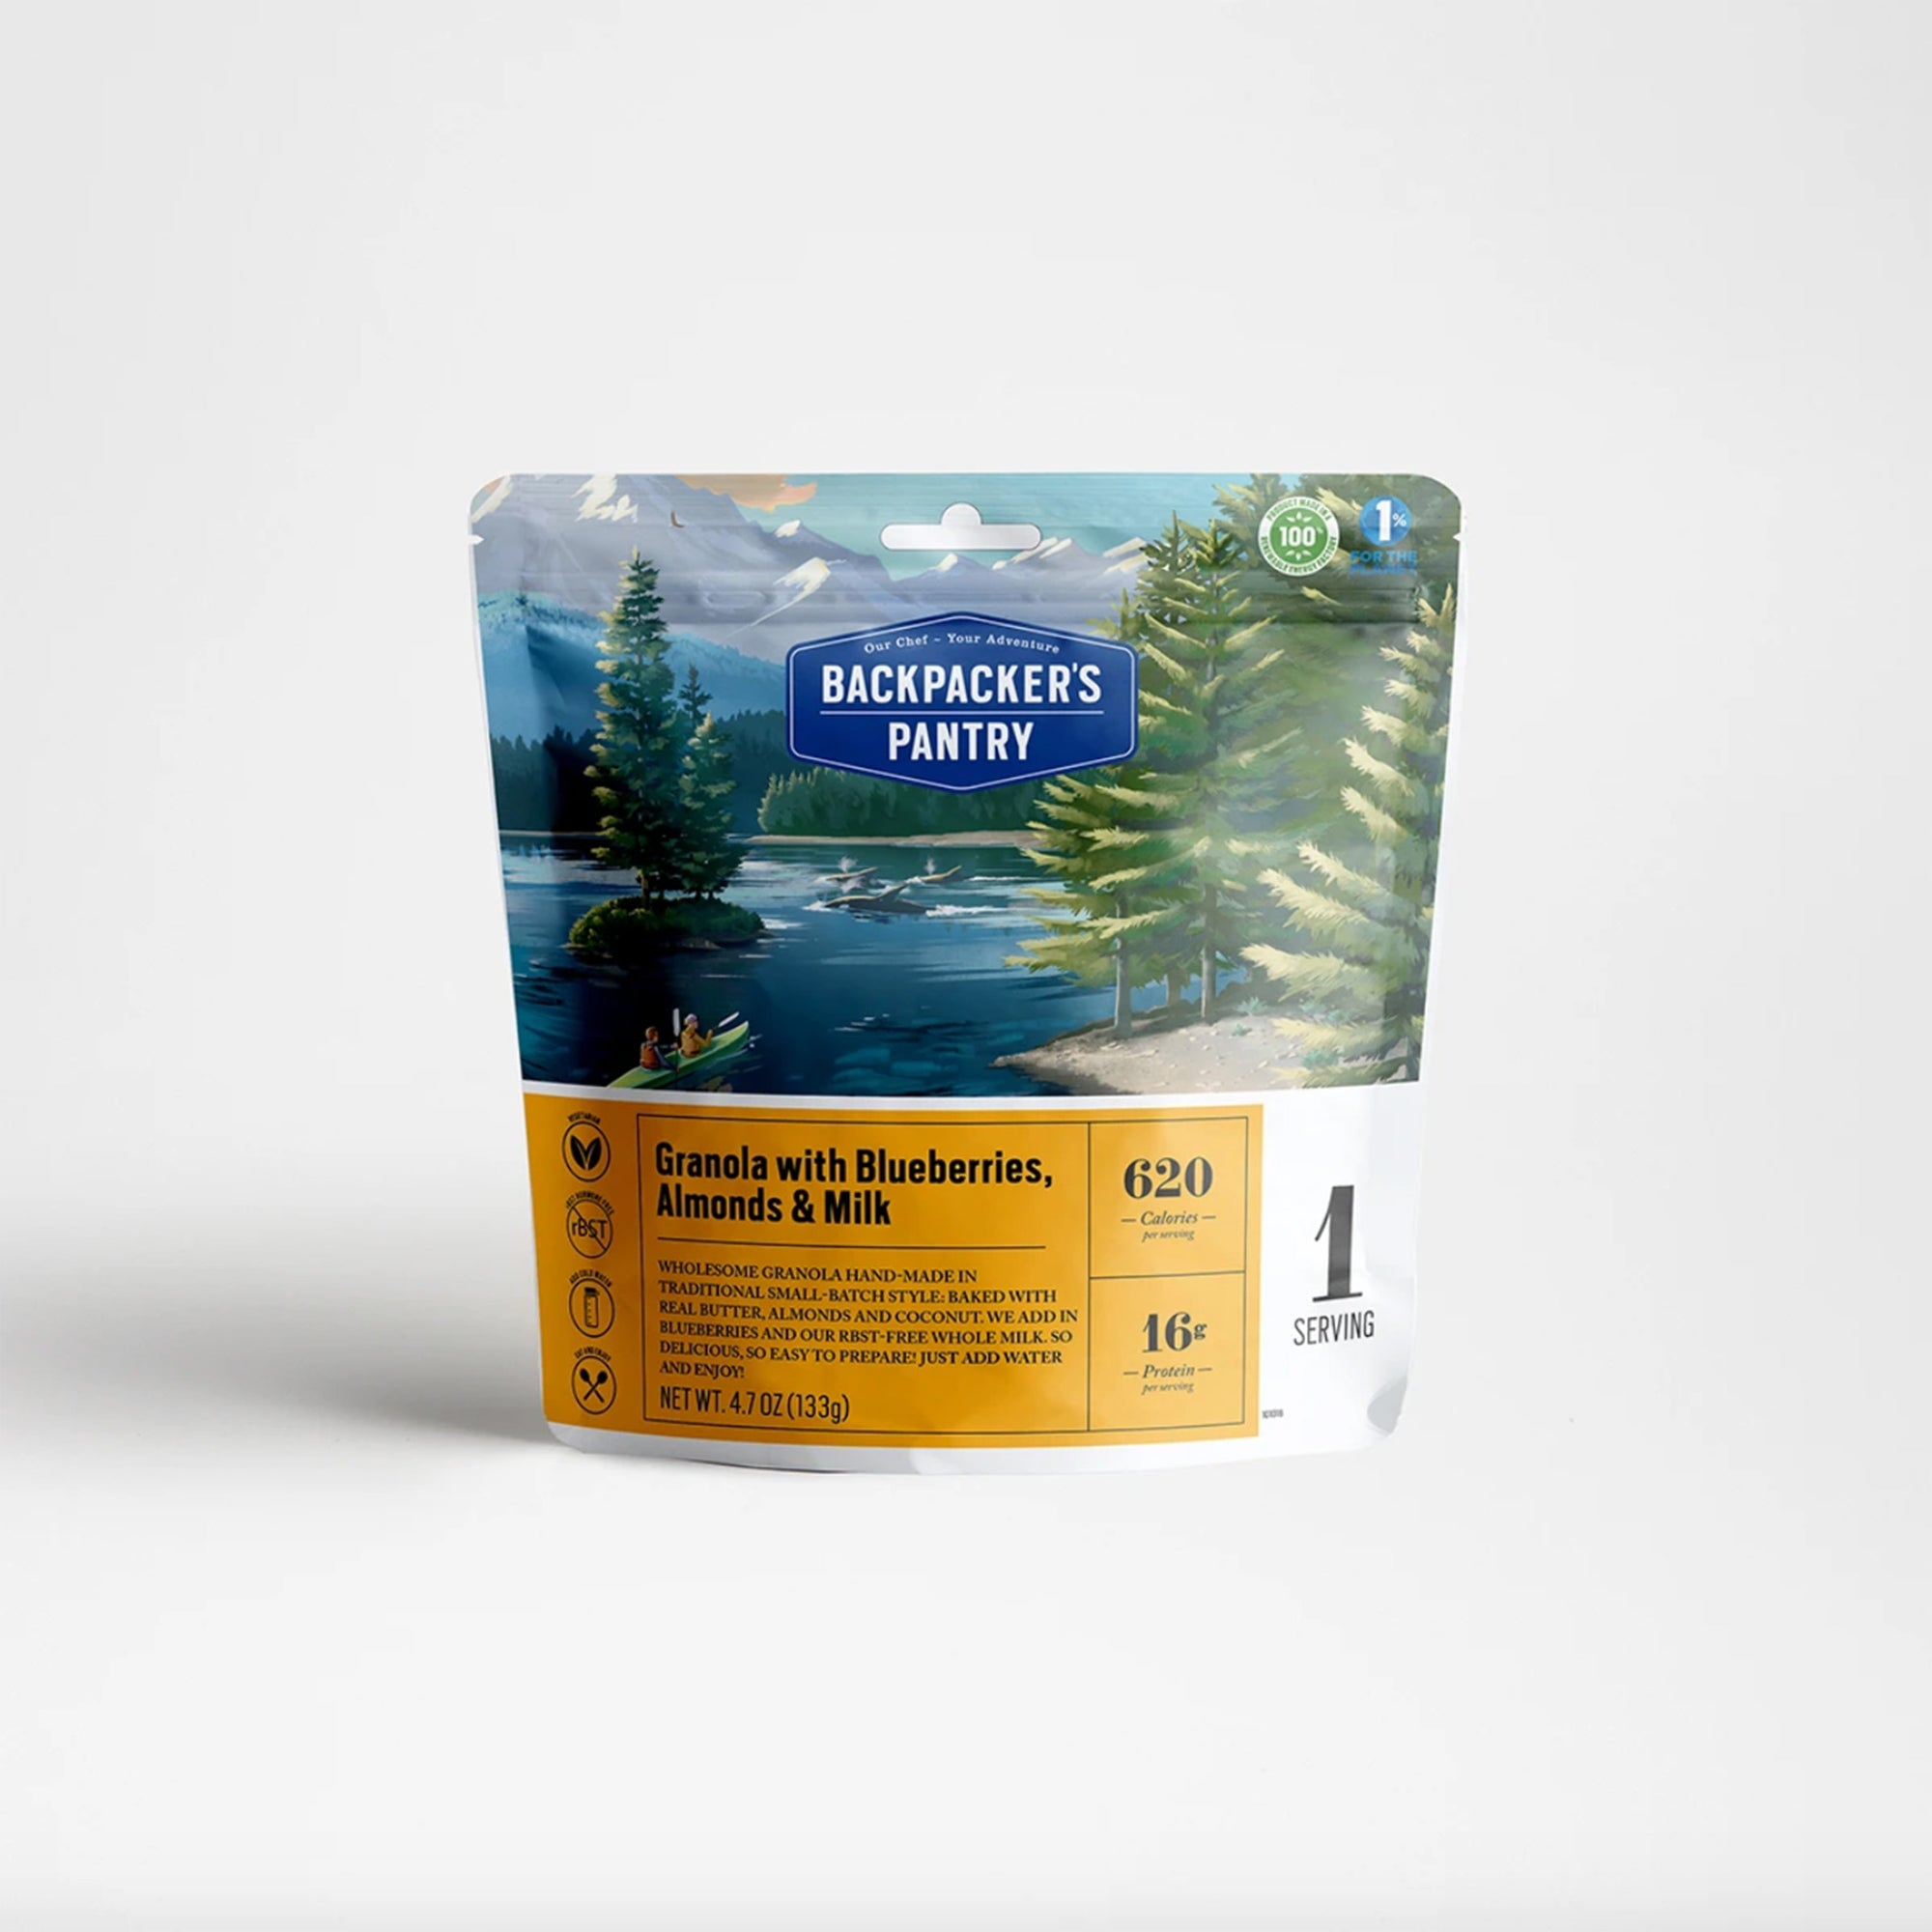 A photo of the front of the package of Backpackers Pantry Granola with Blueberries